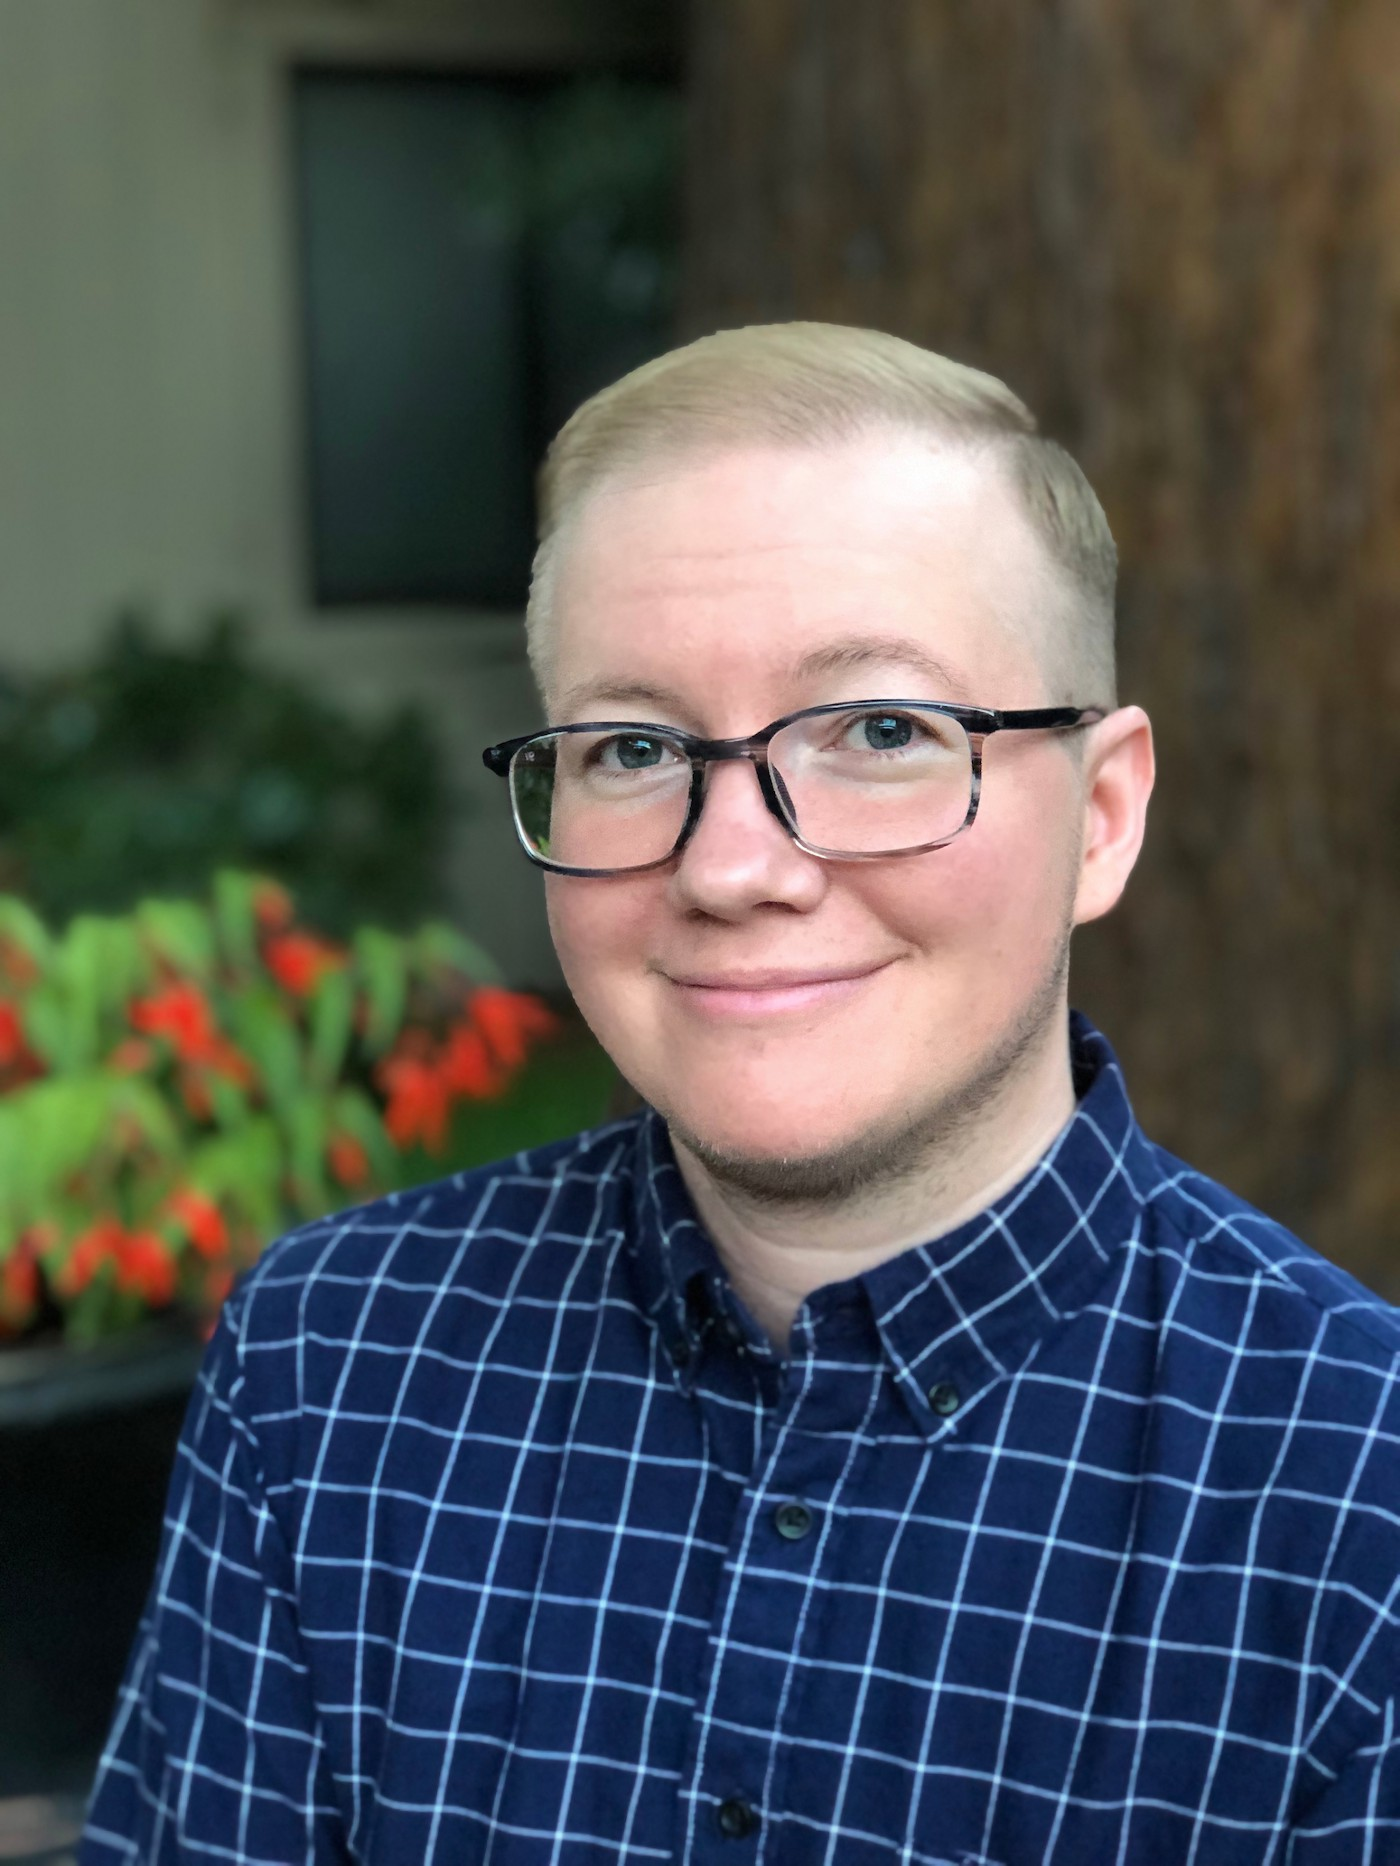 A photograph of AJ Sass, a white male-presenting person in a checked blue shirt. AJ has large glasses, light, short hair shaved on the sides, slight facial hair stubble, and a gentle smile.